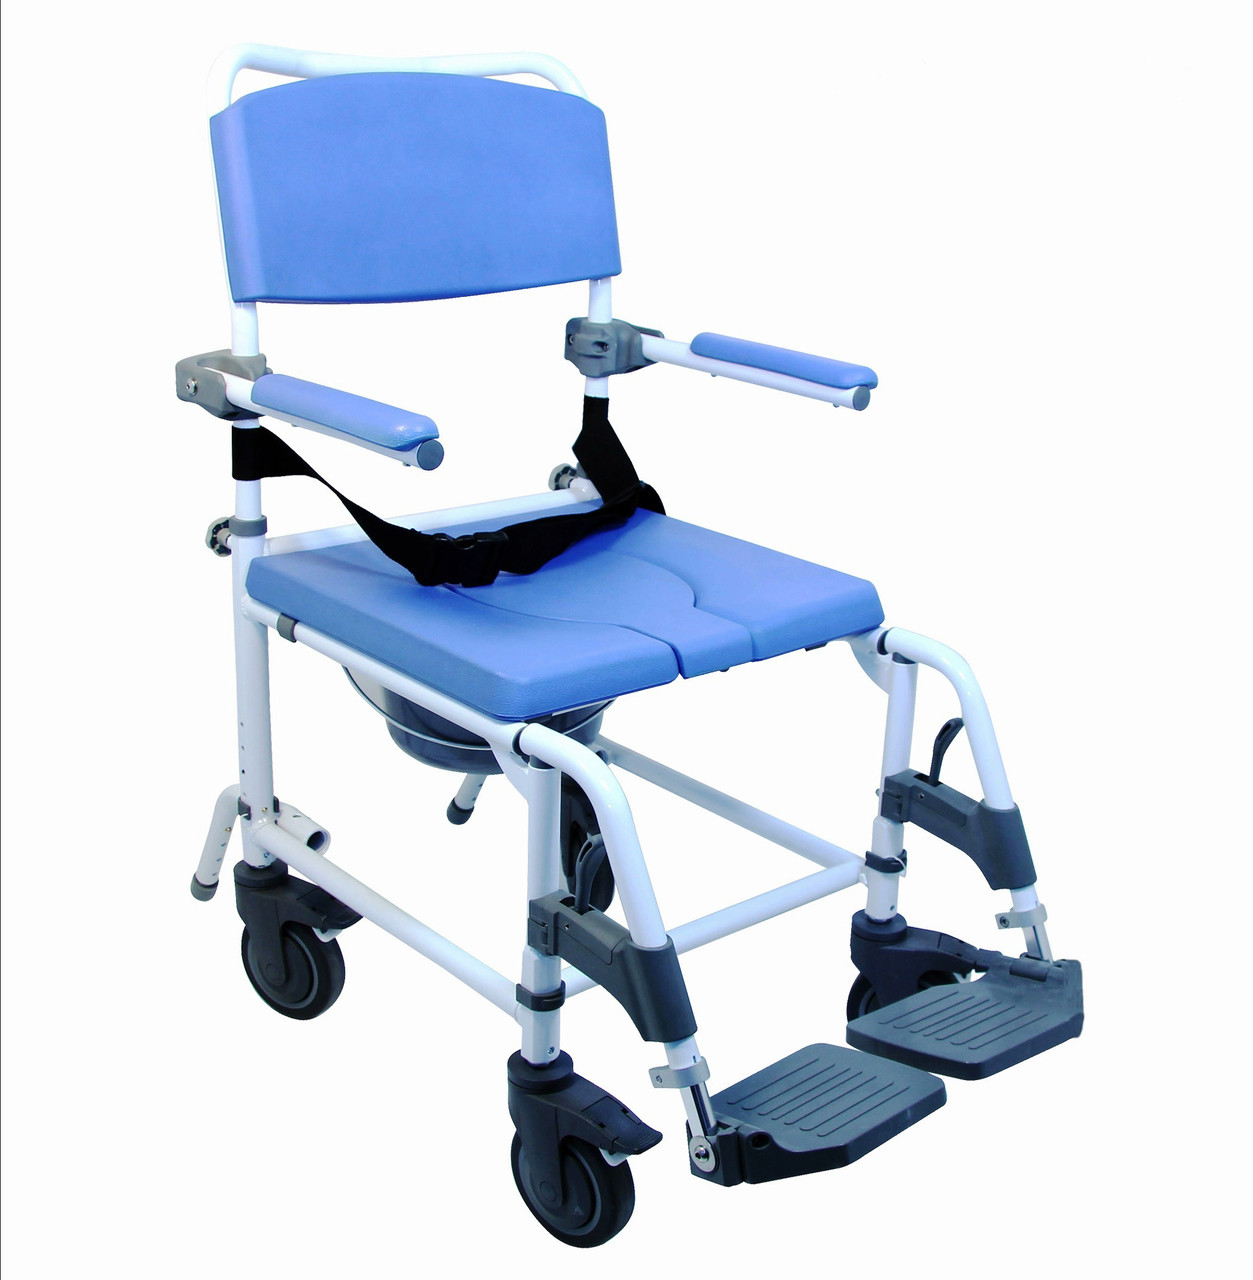 Best Basic Shower Commode Chair - CareProdx